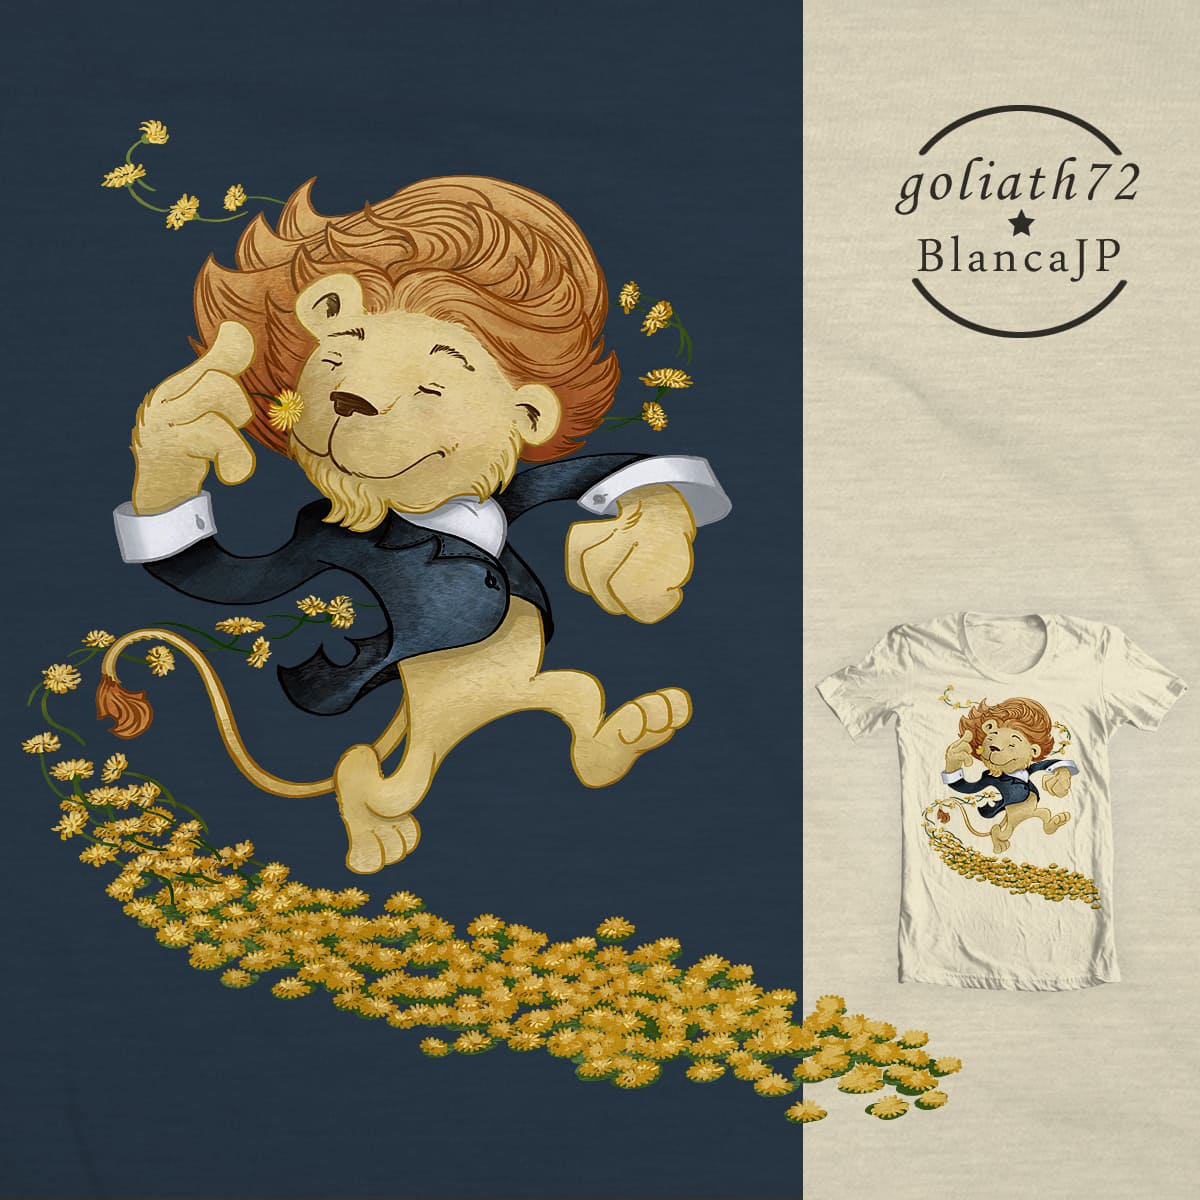 Dandelion by BlancaJP and goliath72 on Threadless